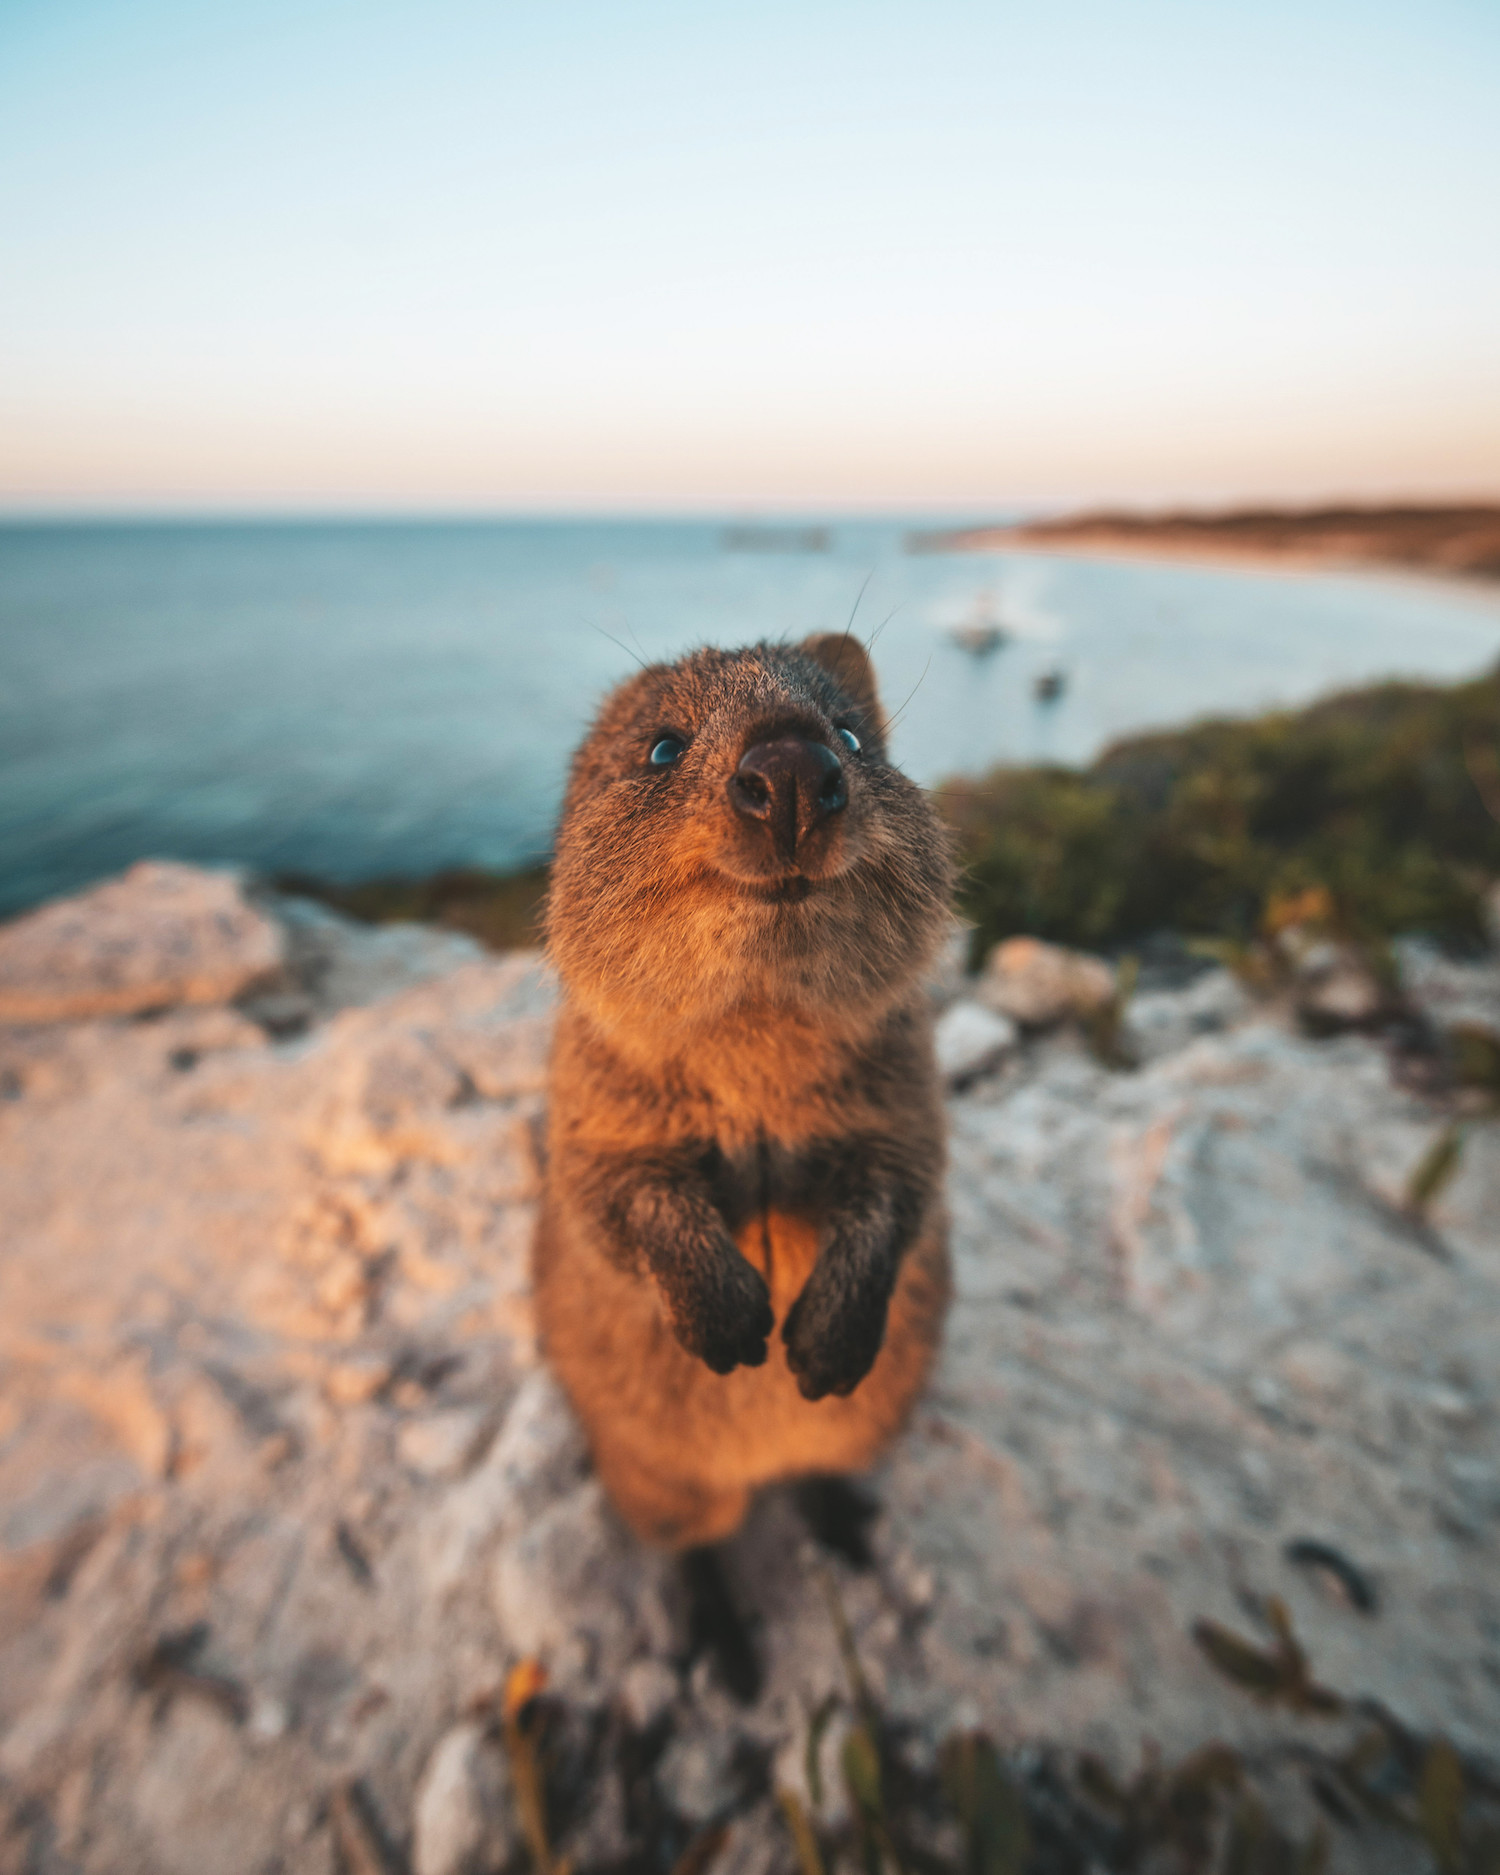 A smiling quokka stands on a clifftop edge.